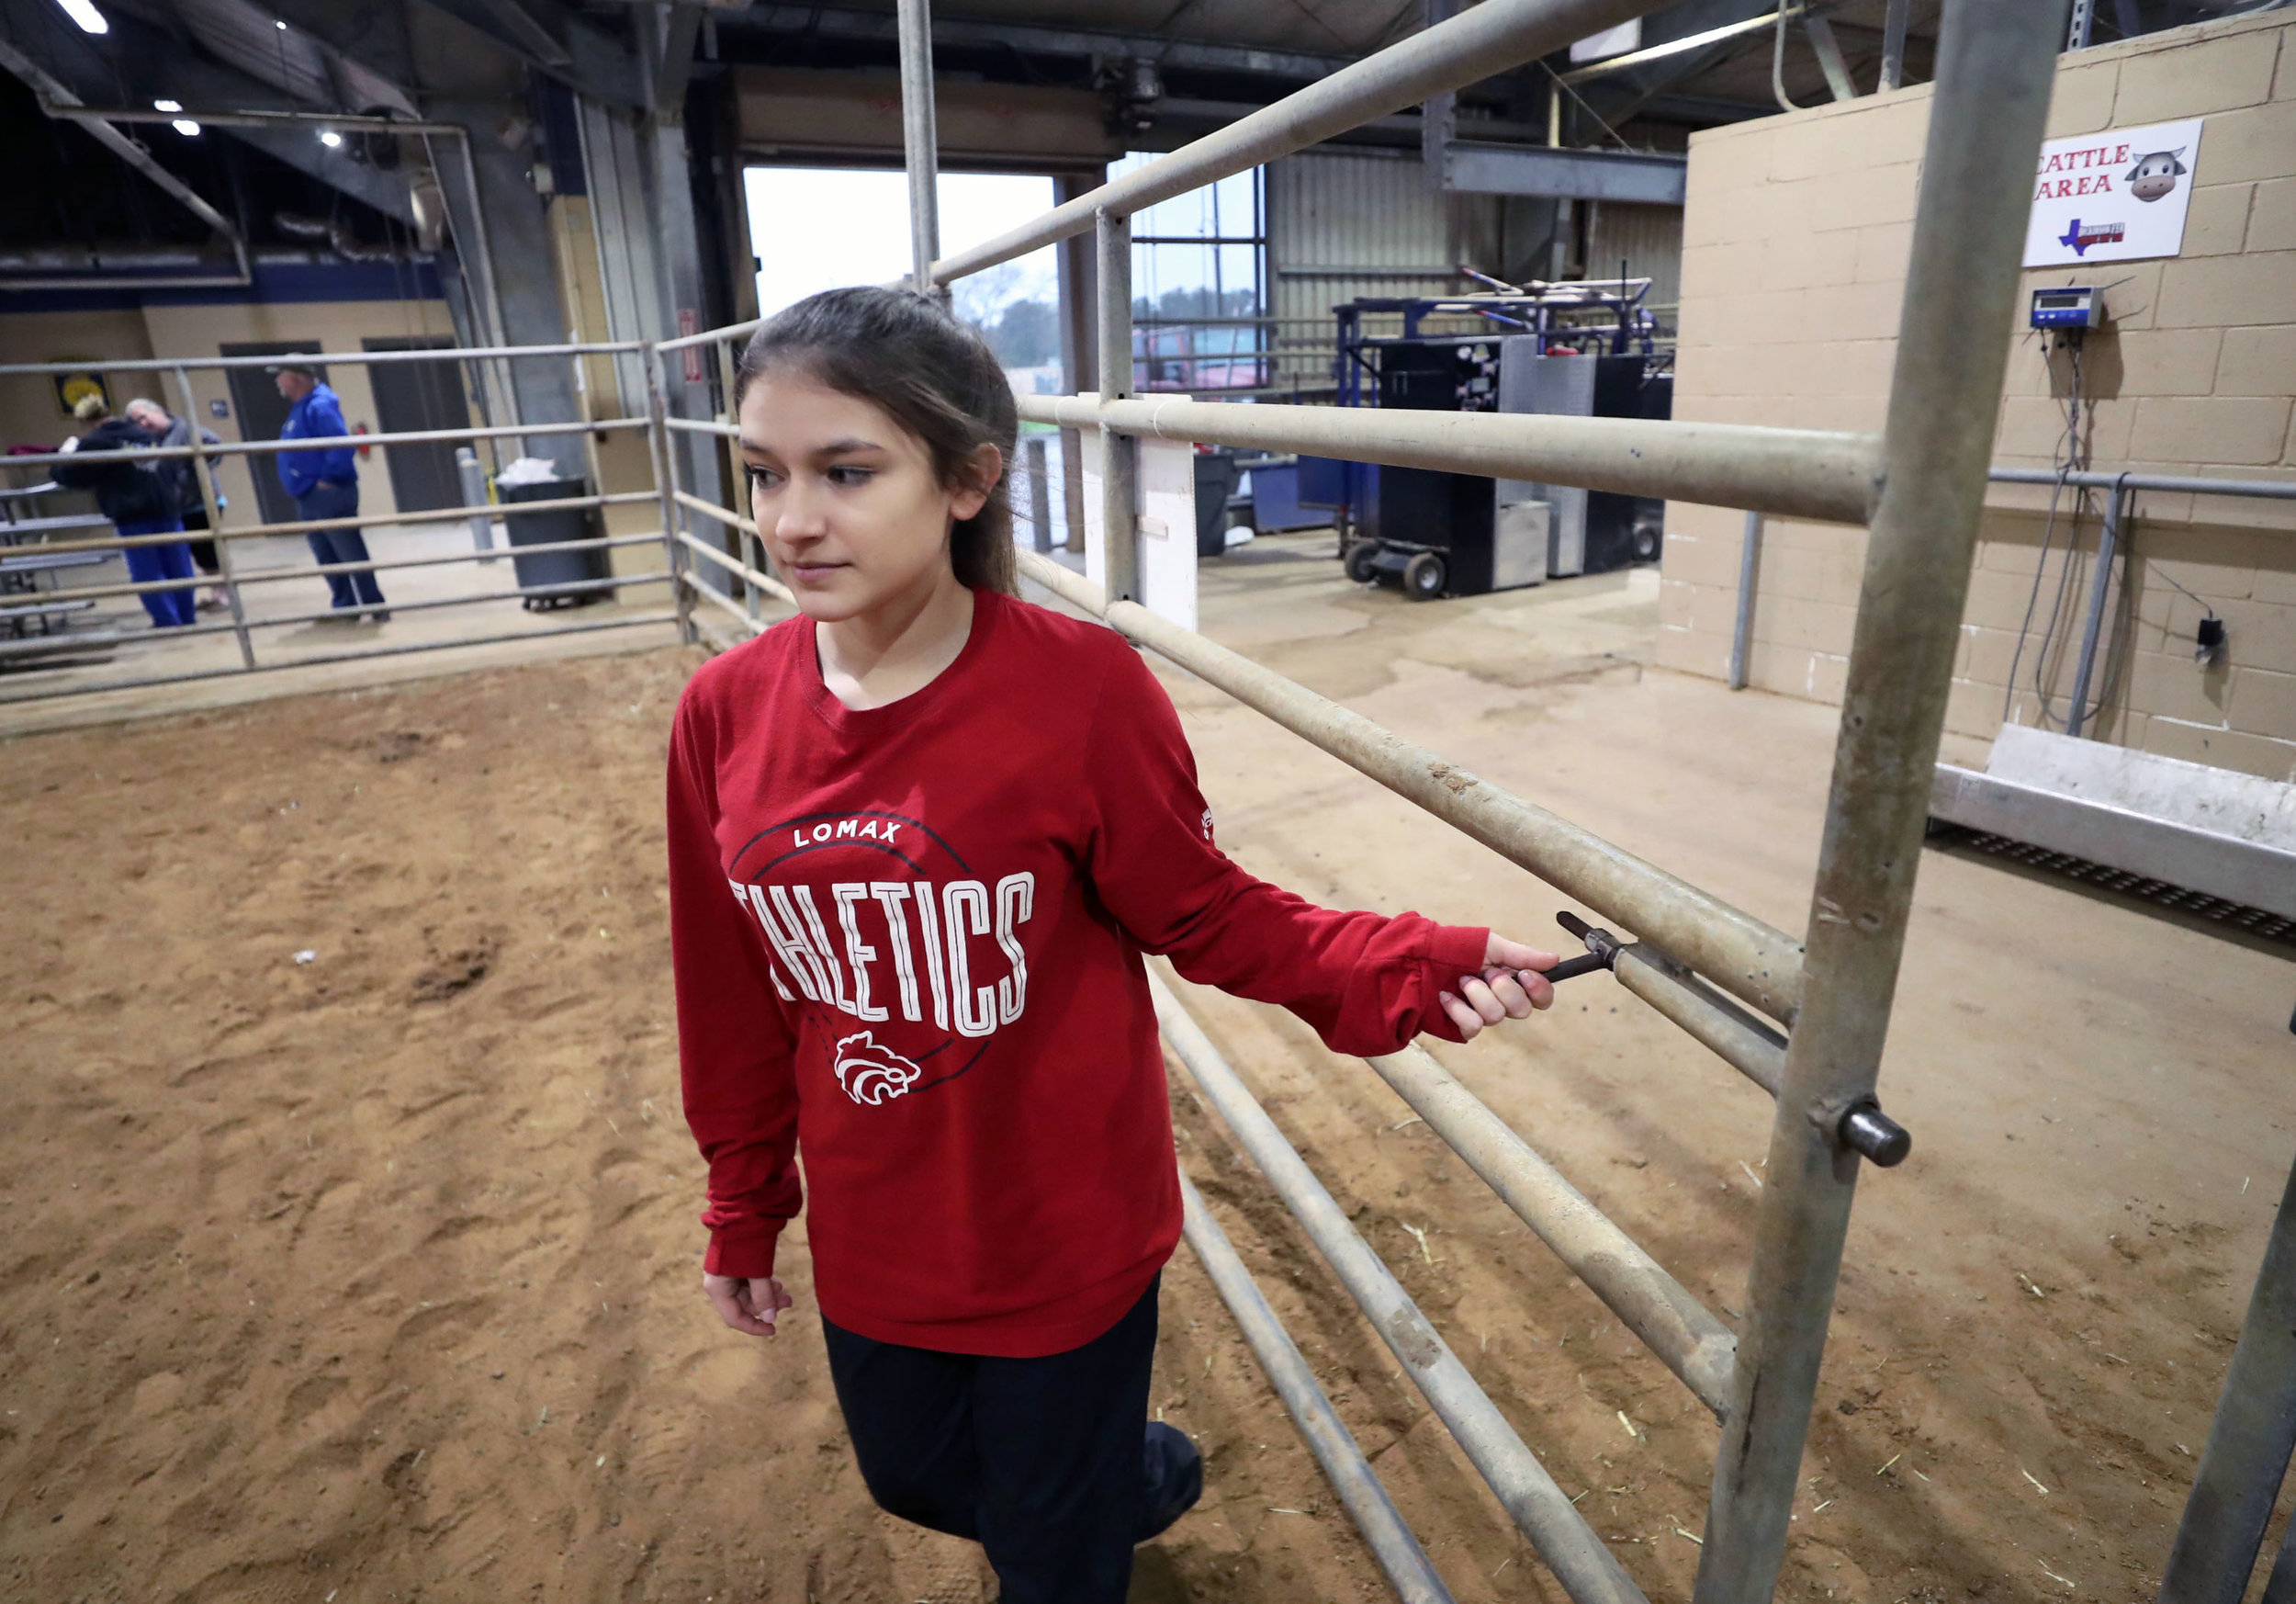 Morgan Perez opens the gate for the practice arena at the Dickinson Agriculture Science Facility on Tuesday, Feb. 26, 2019. Students can use the arena to practice how they will show their various livestock at the Galveston County Fair and Rodeo.